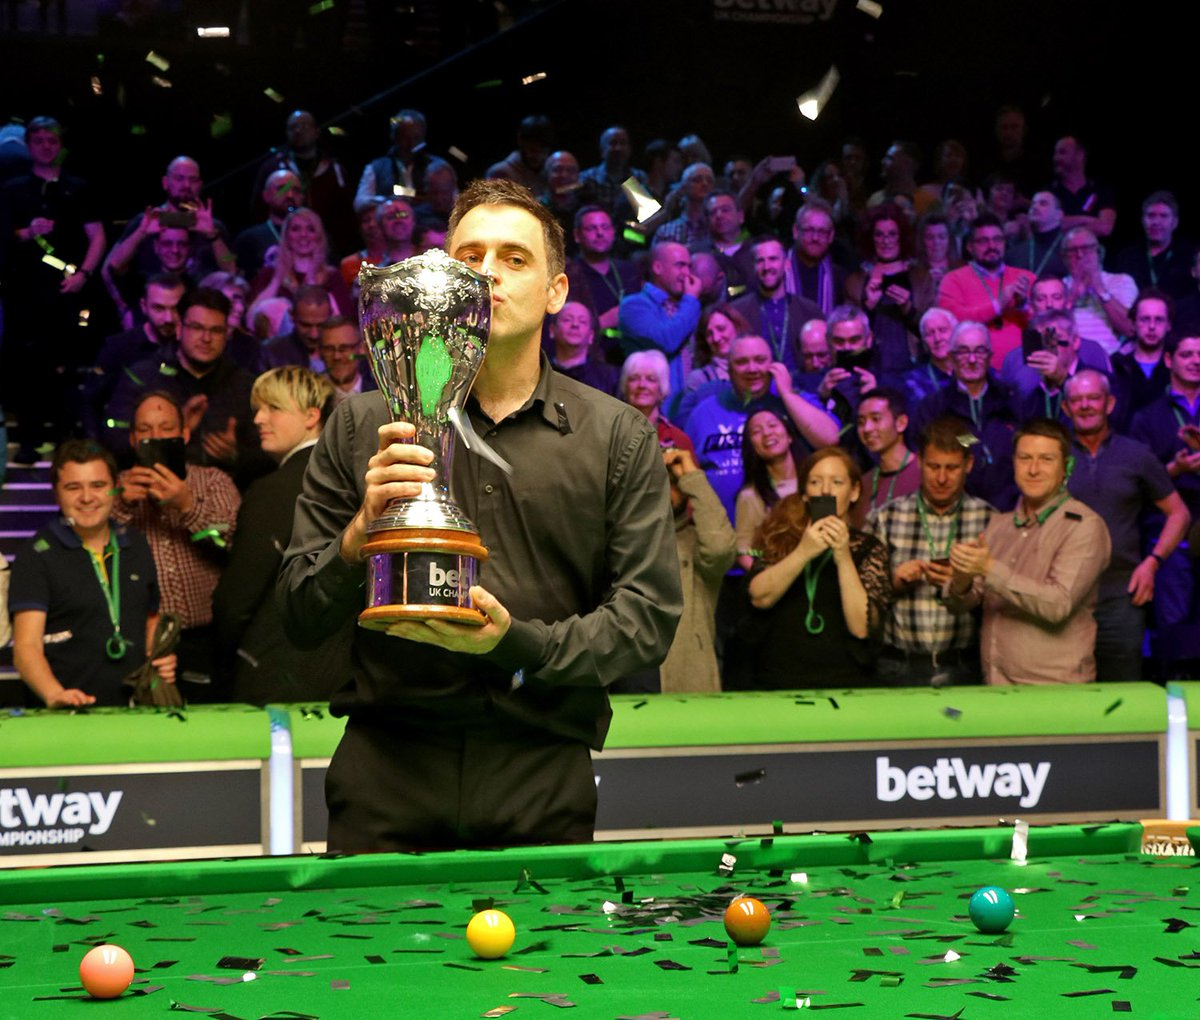 🏆 CHAMPION | @ronnieo147 has defeated Mark Allen 10-6 to win the @betway UK Championship for a record seventh time at the York Barbican. The win is his 34th career ranking title & a record 19th triple crown title, eclipsing the previous record of Stephen Hendry. #baizeofglory